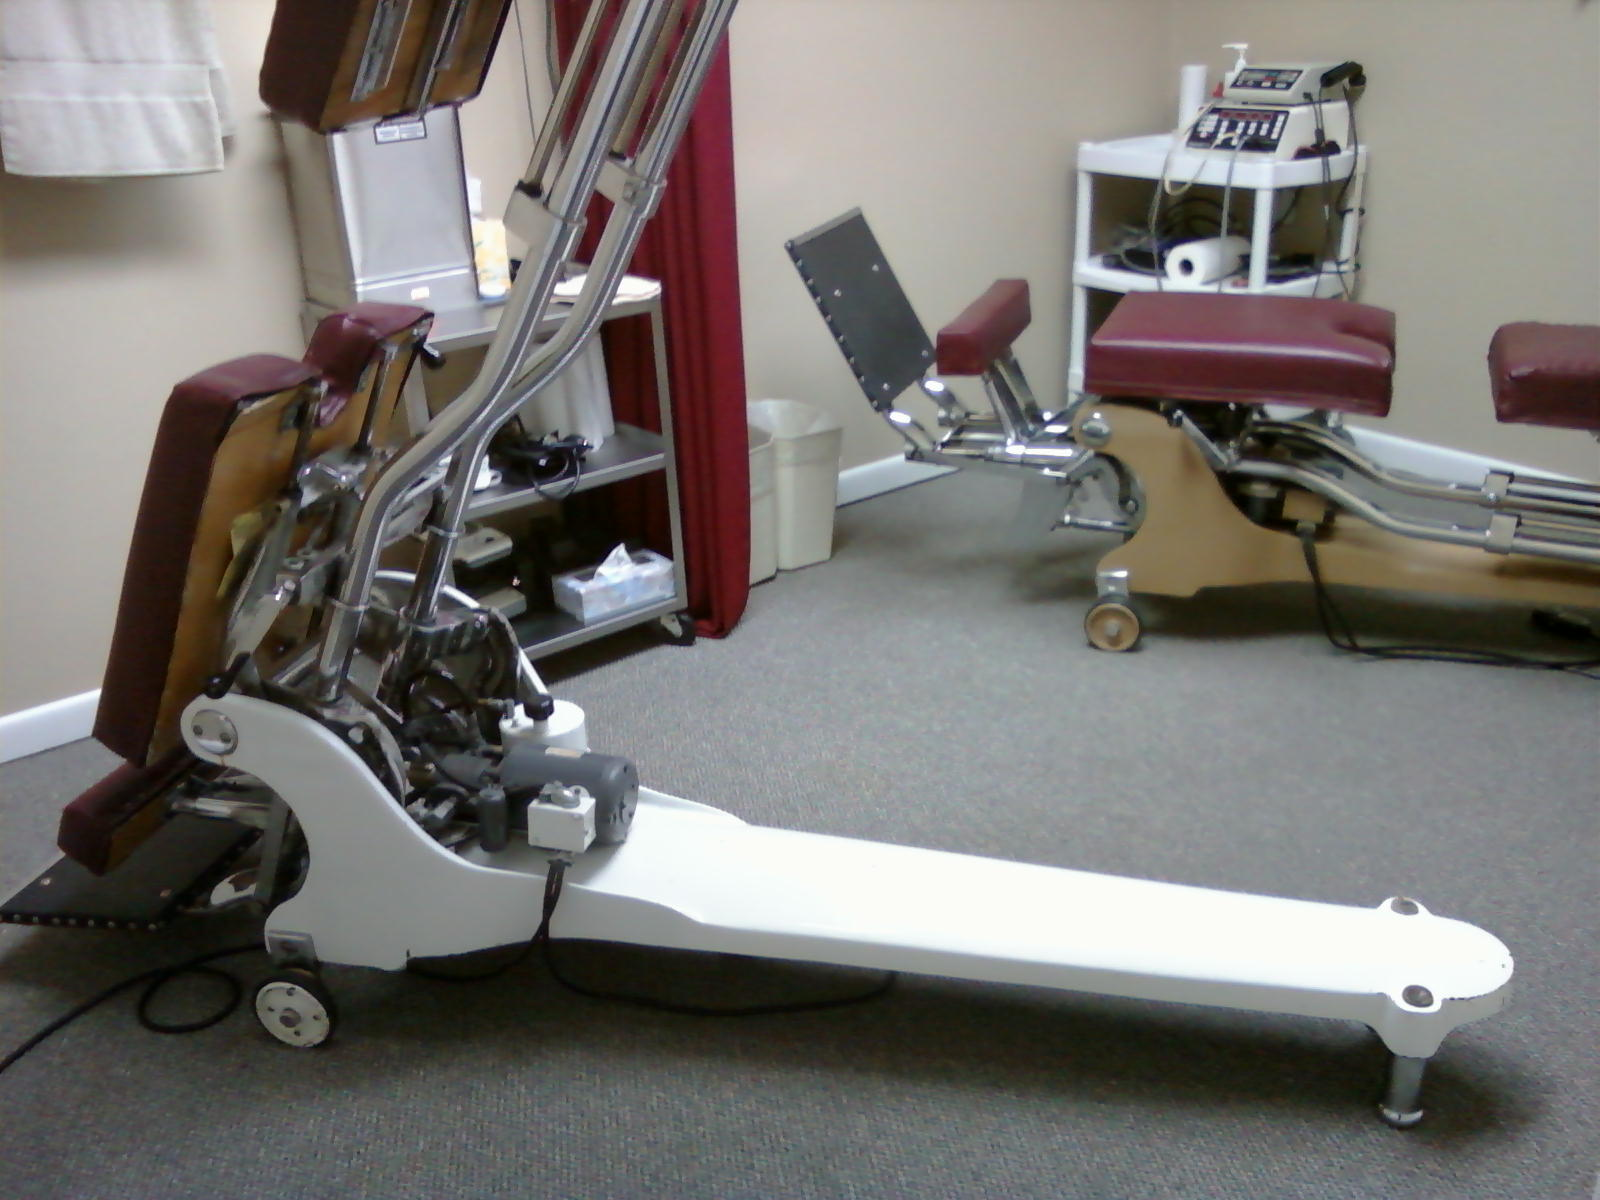 Tremendous Used Zenith 210 Hylo Chiropractic Table For Sale 924088782 Interior Design Ideas Jittwwsoteloinfo